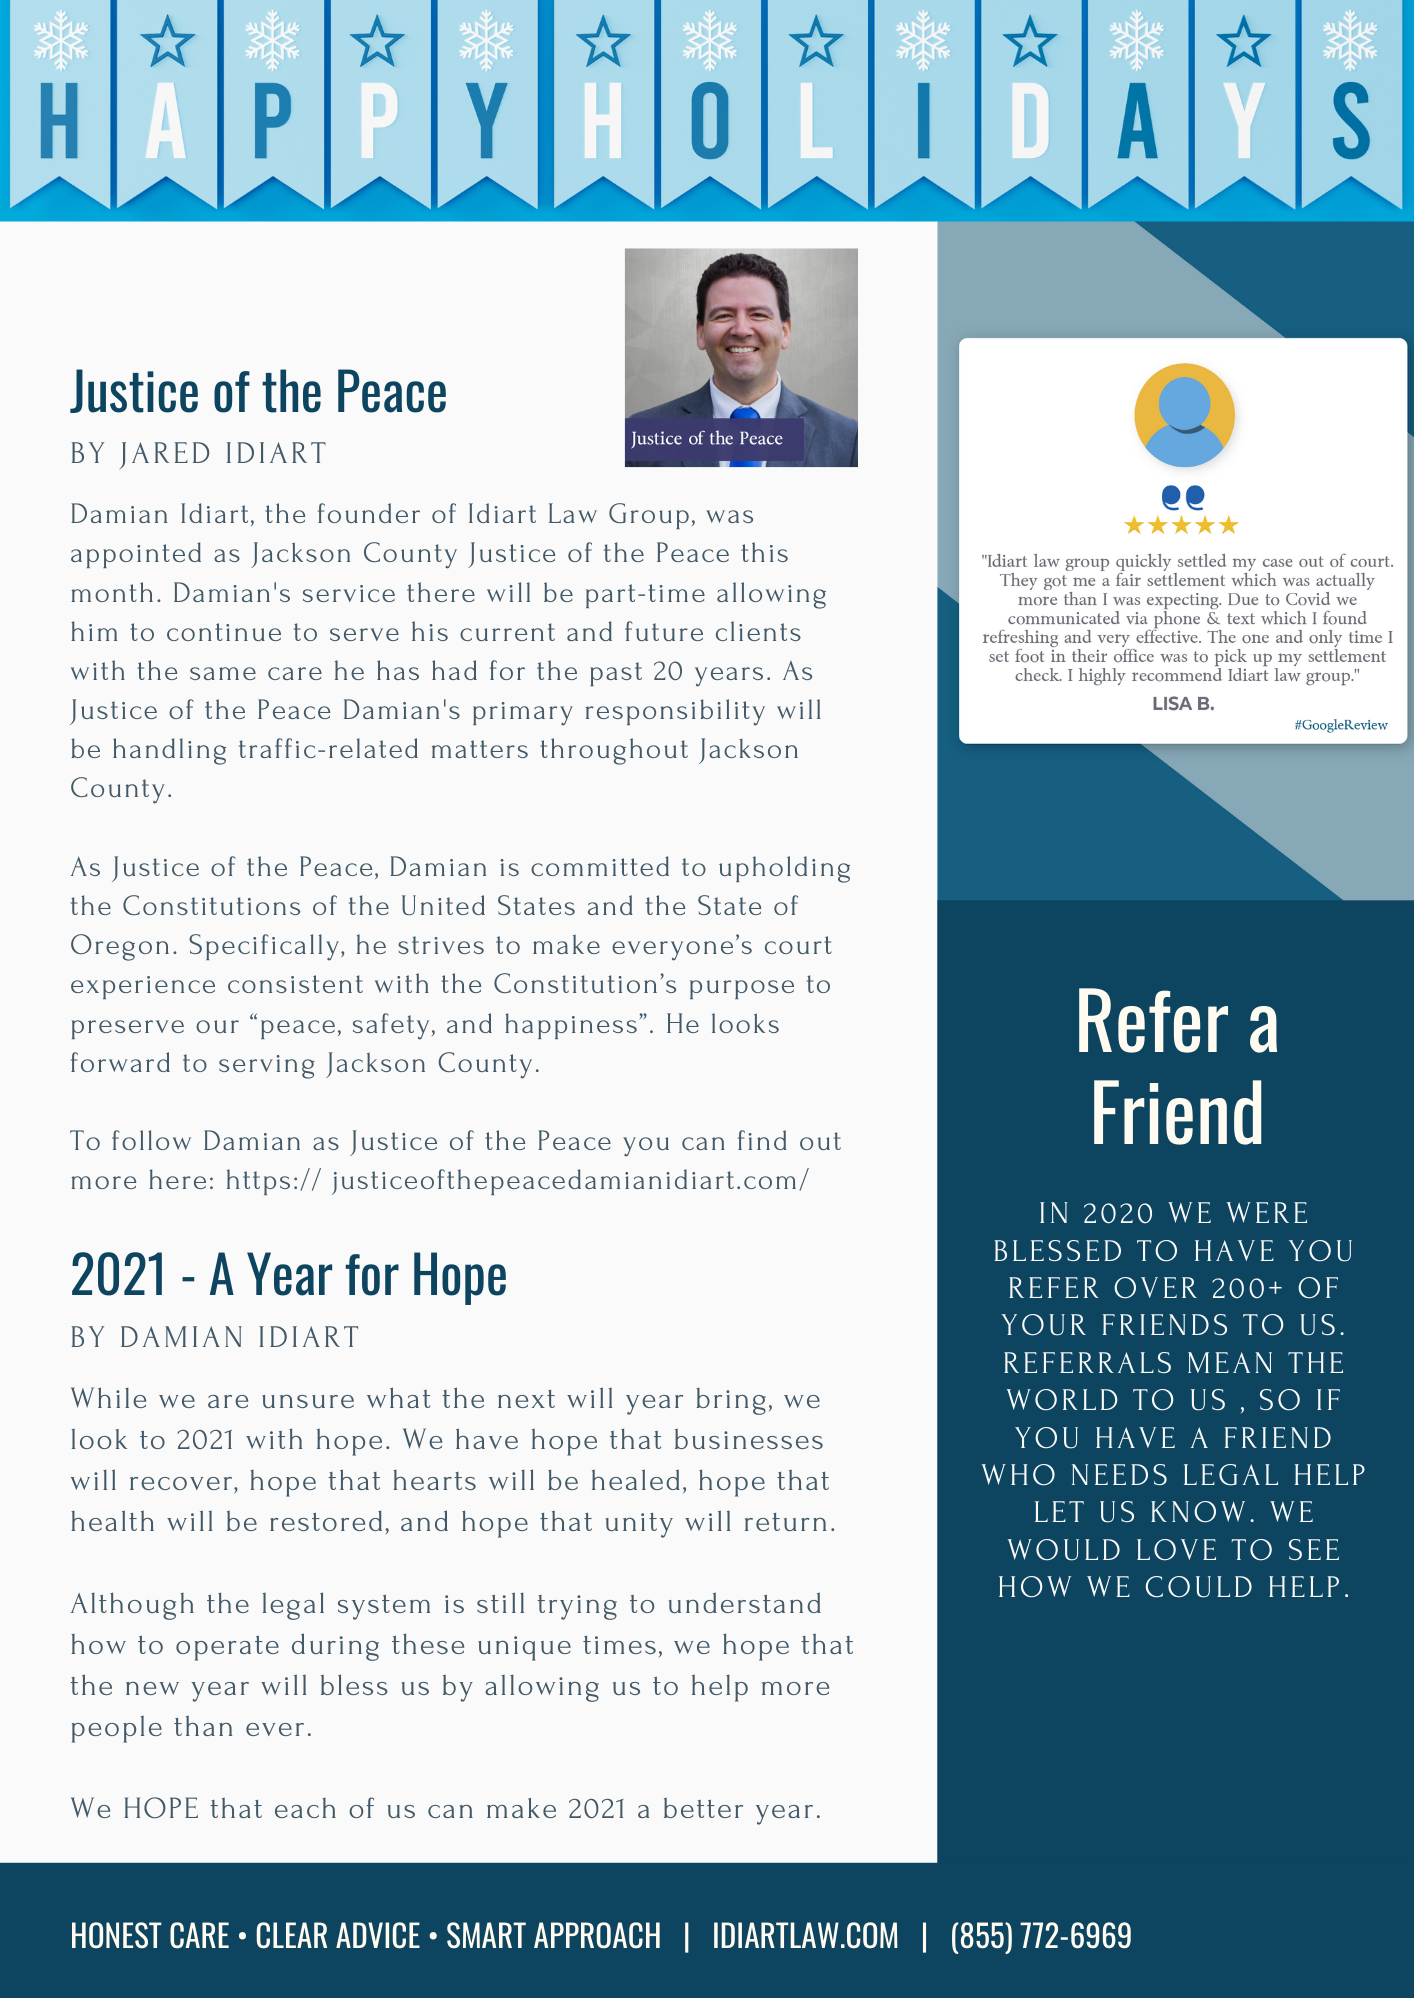 """stice of the Peace Damian's primary responsibility will be handling traffic-related matters throughout Jackson County.   As Justice of the Peace, Damian is committed to upholding the Constitutions of the United States and the State of Oregon. Specifically, he strives to make everyone's court experience consistent with the Constitution's purpose to preserve our """"peace, safety, and happiness"""". He looks forward to serving Jackson County.   To follow Damian as Justice of the Peace you can find out more here: https:// justiceofthepeacedamianidiart.com/"""